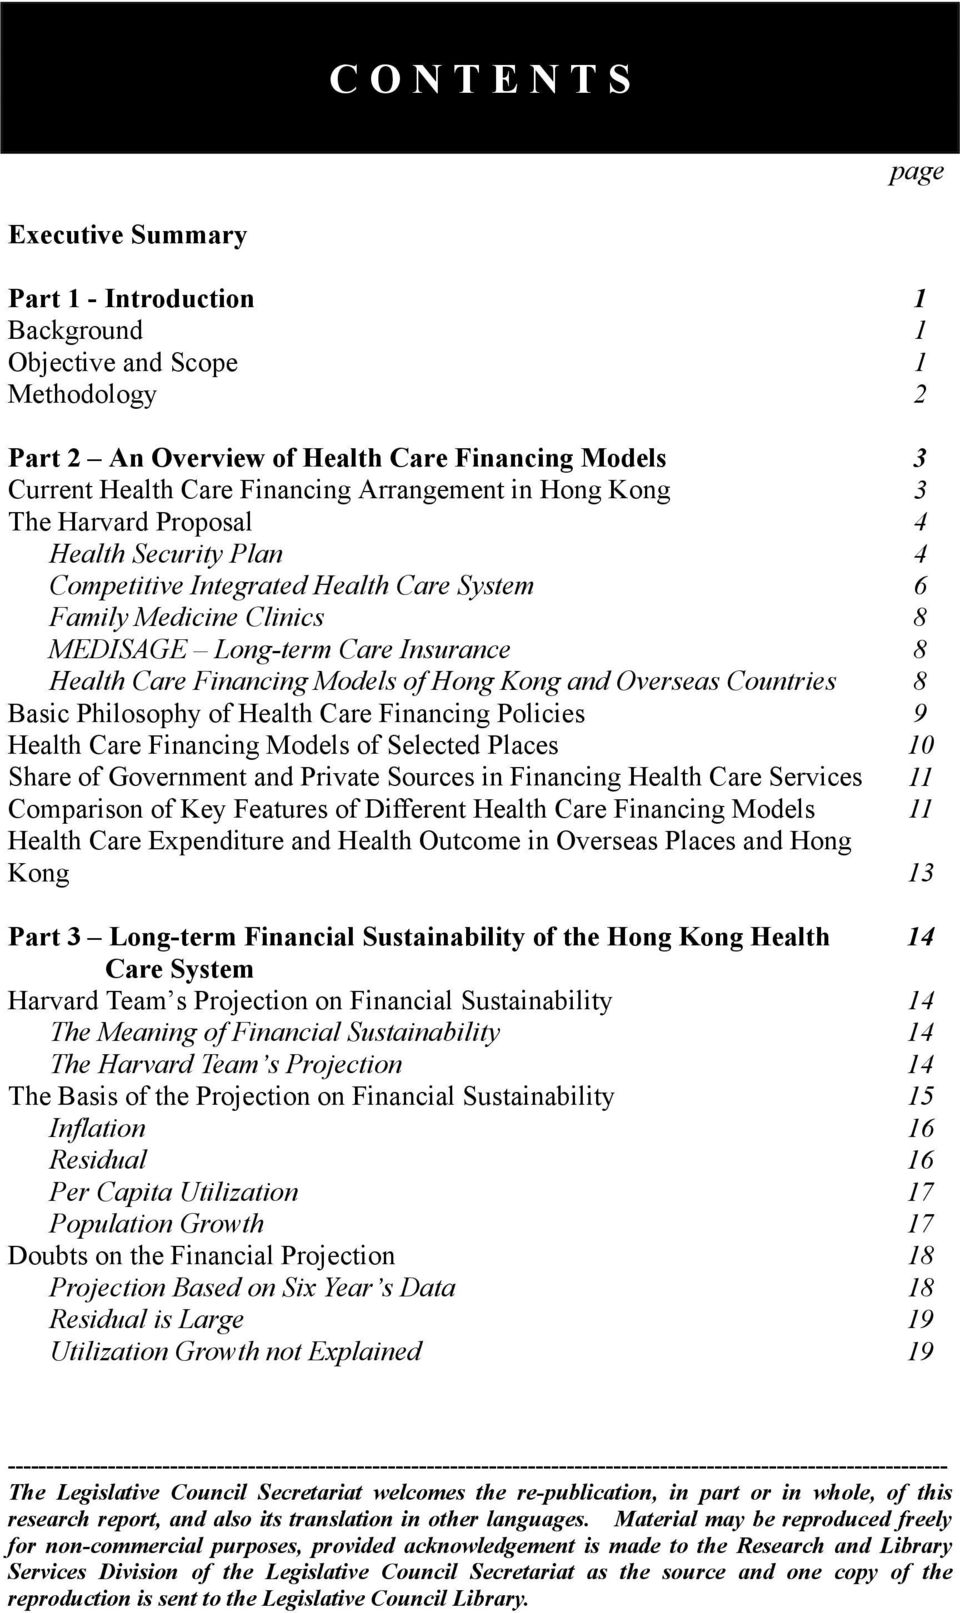 Financing Models of Hong Kong and Overseas Countries 8 Basic Philosophy of Health Care Financing Policies 9 Health Care Financing Models of Selected Places 10 Share of Government and Private Sources